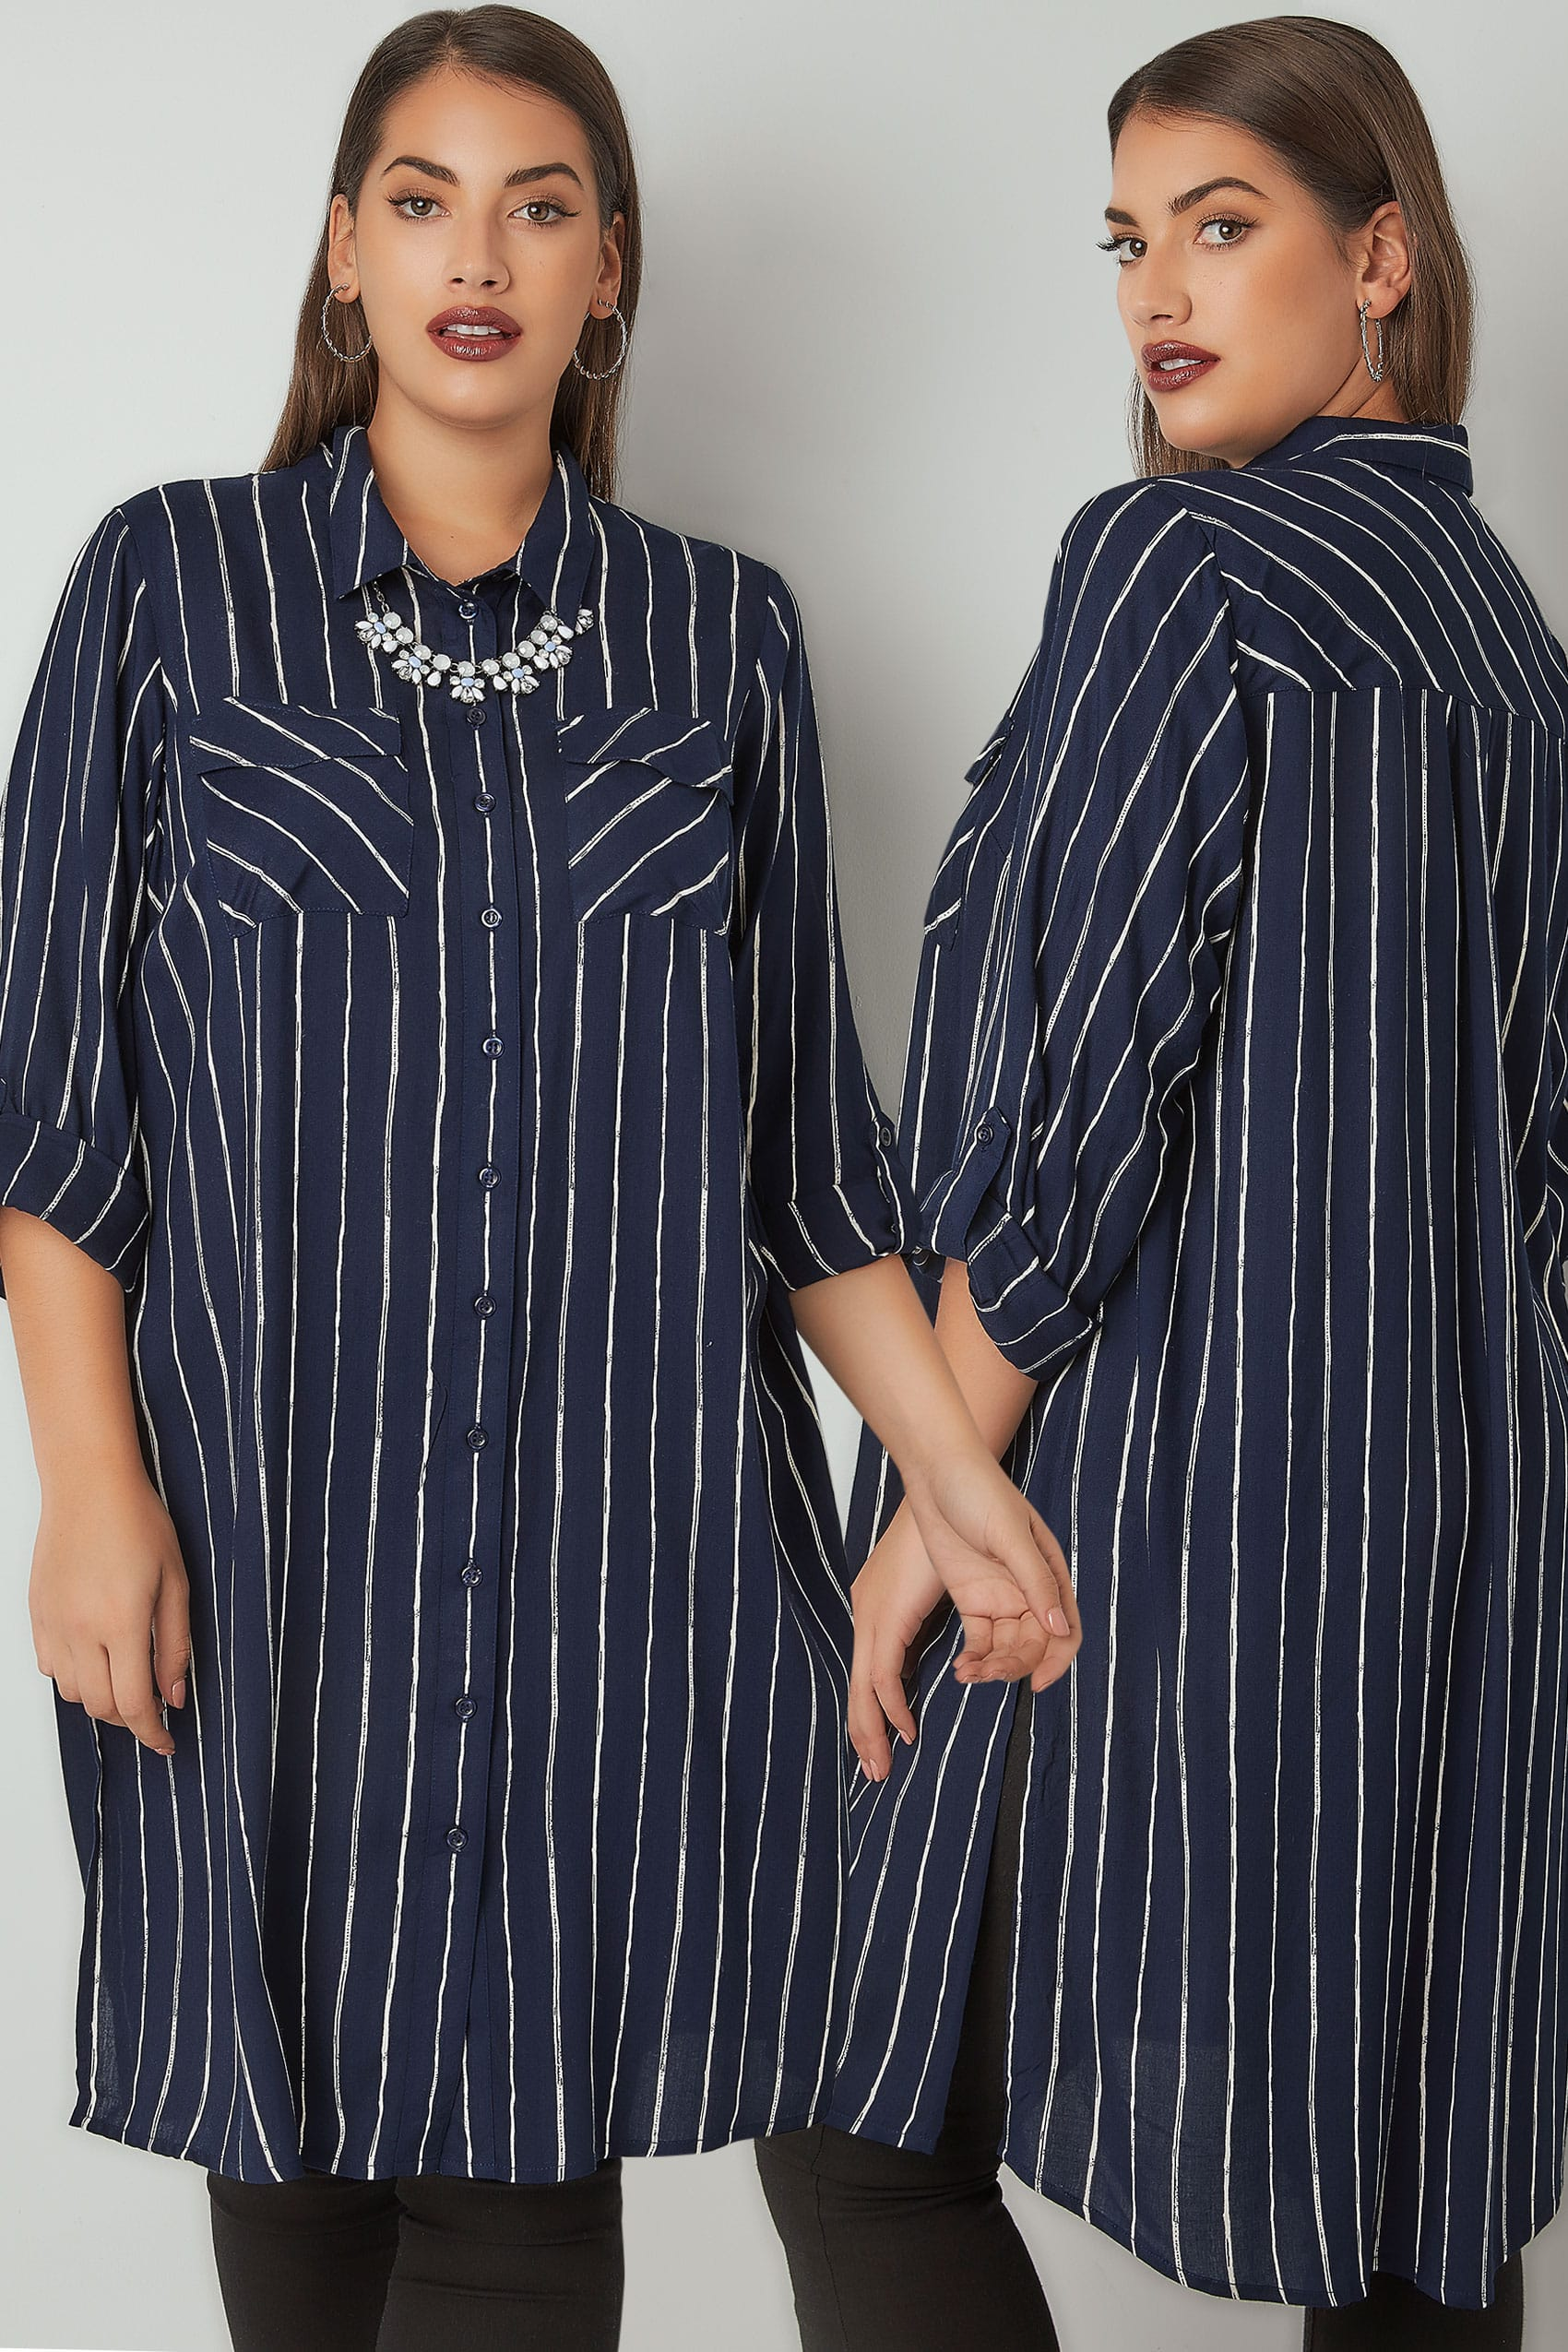 navy ivory stripe longline shirt with chest pockets. Black Bedroom Furniture Sets. Home Design Ideas